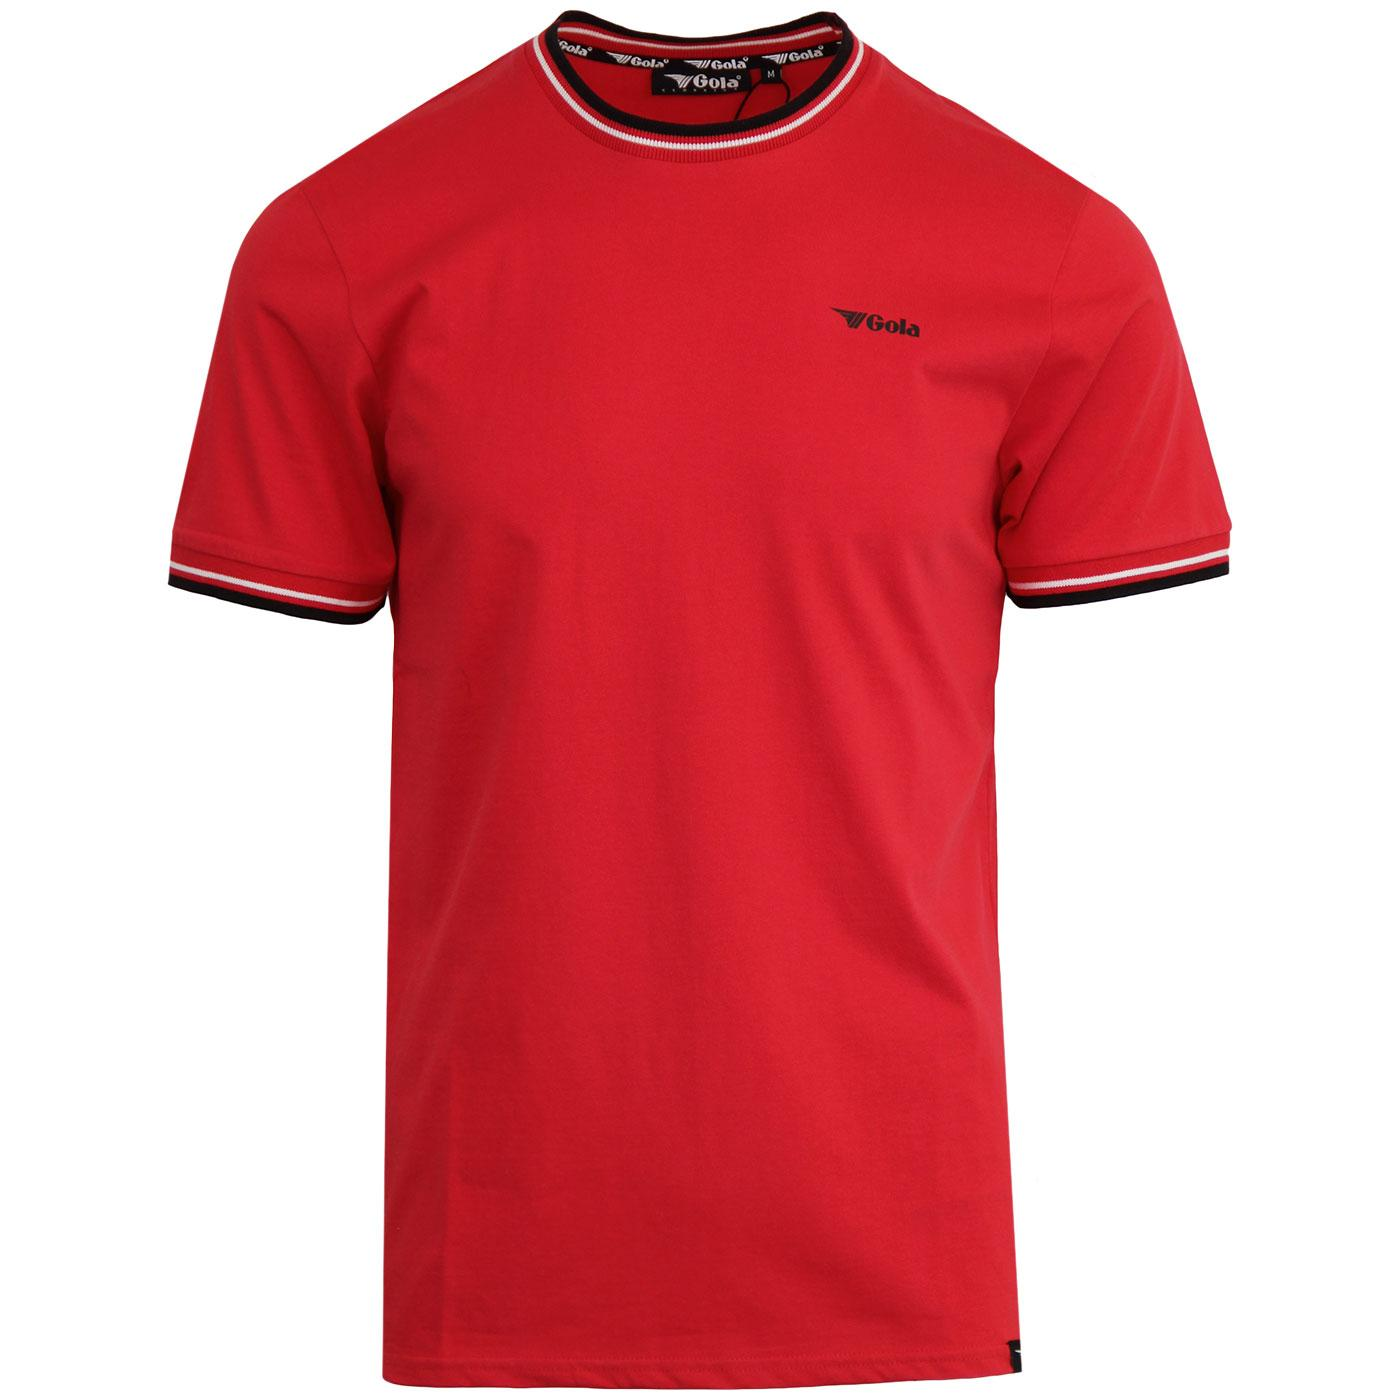 Book GOLA CLASSICS Retro Mens Tipped T-Shirt RED